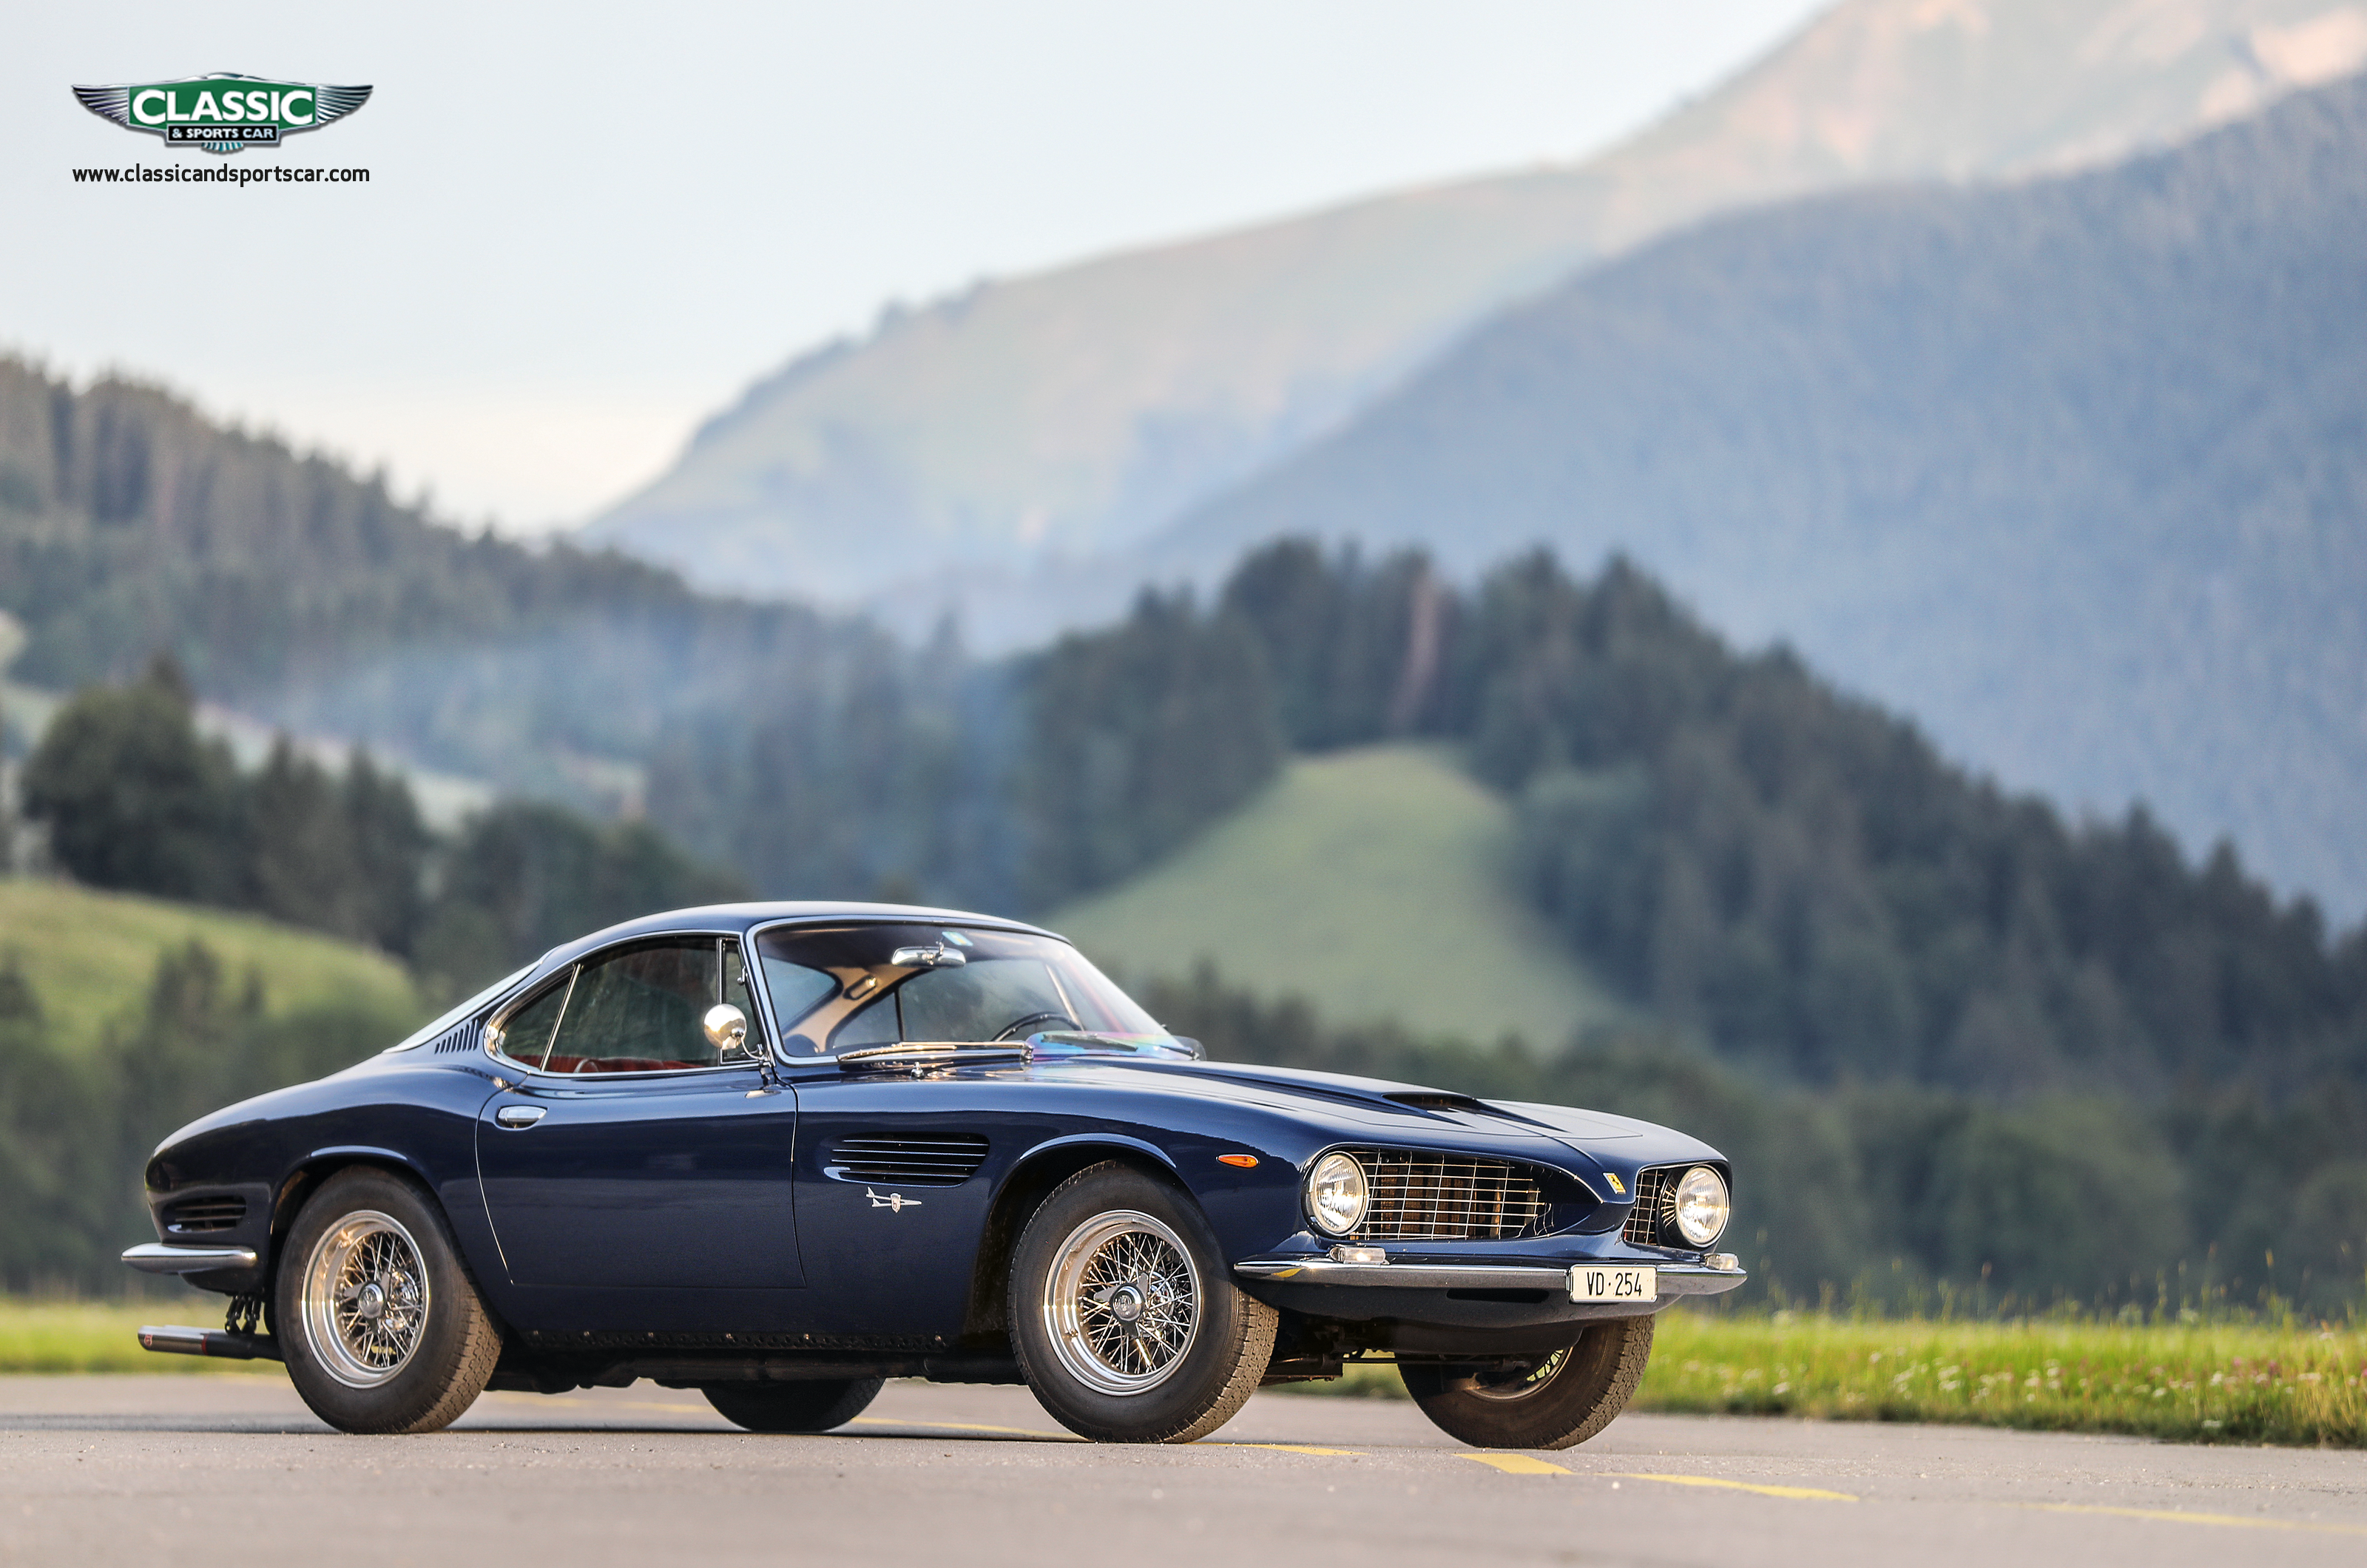 Five Beautiful Desktop Wallpapers From The April 2020 Issue Classic Sports Car